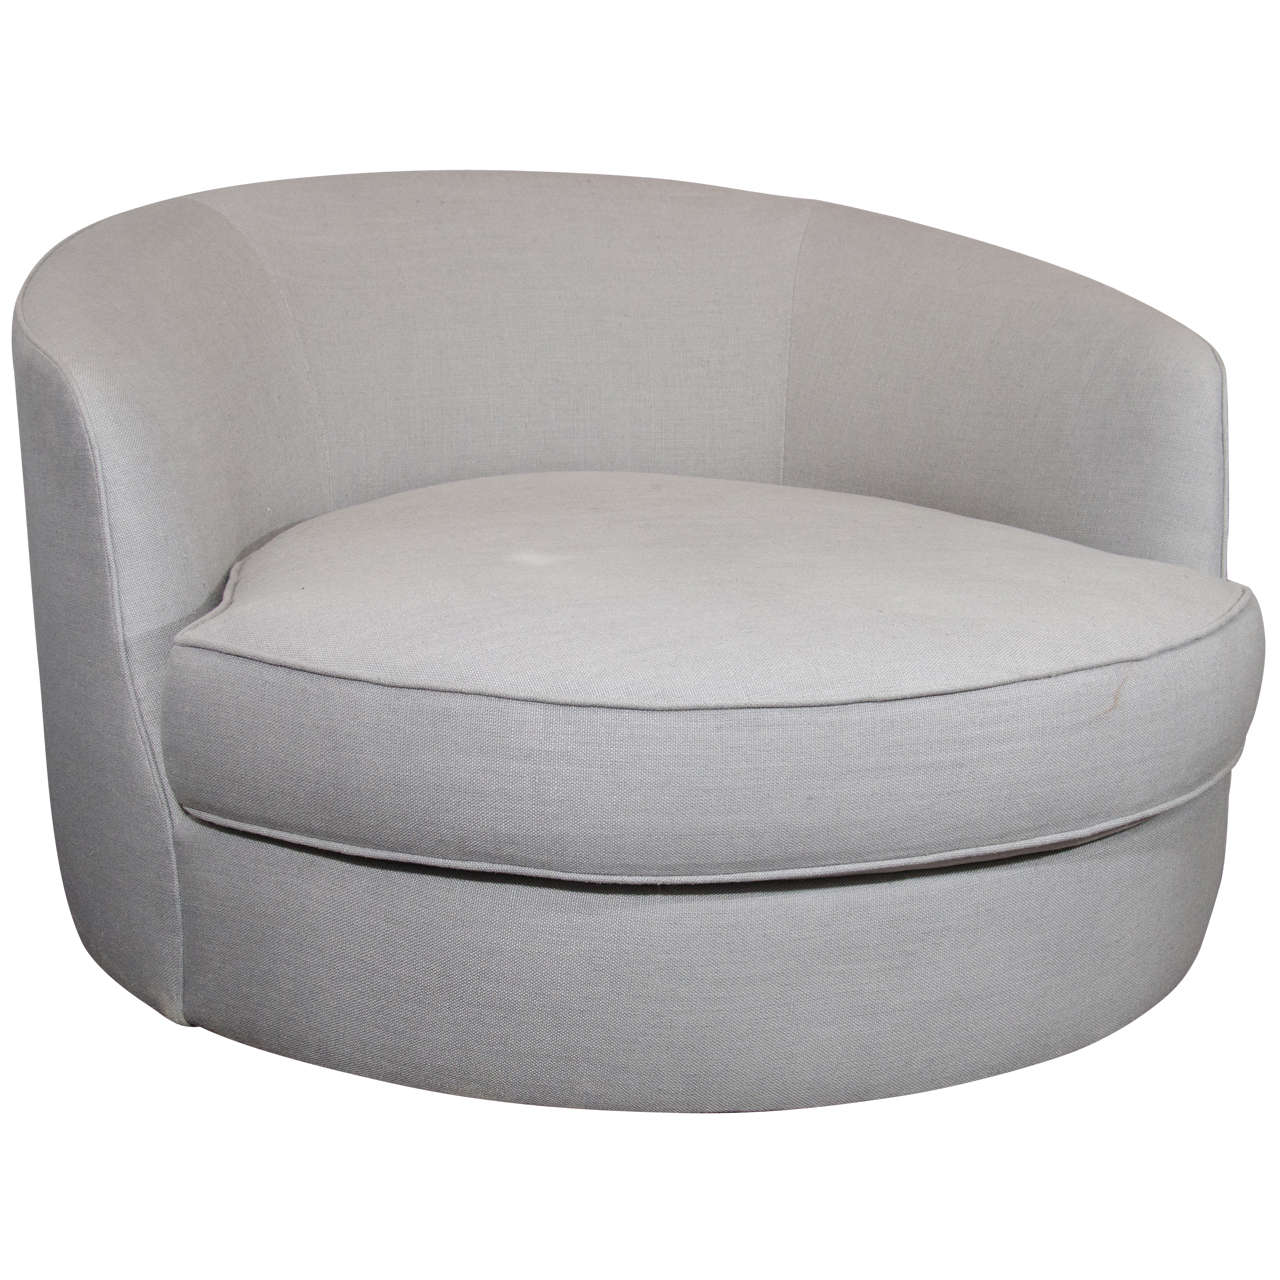 sc 1 st  1stDibs & 1960s Milo Baughman Tub Chair For Sale at 1stdibs